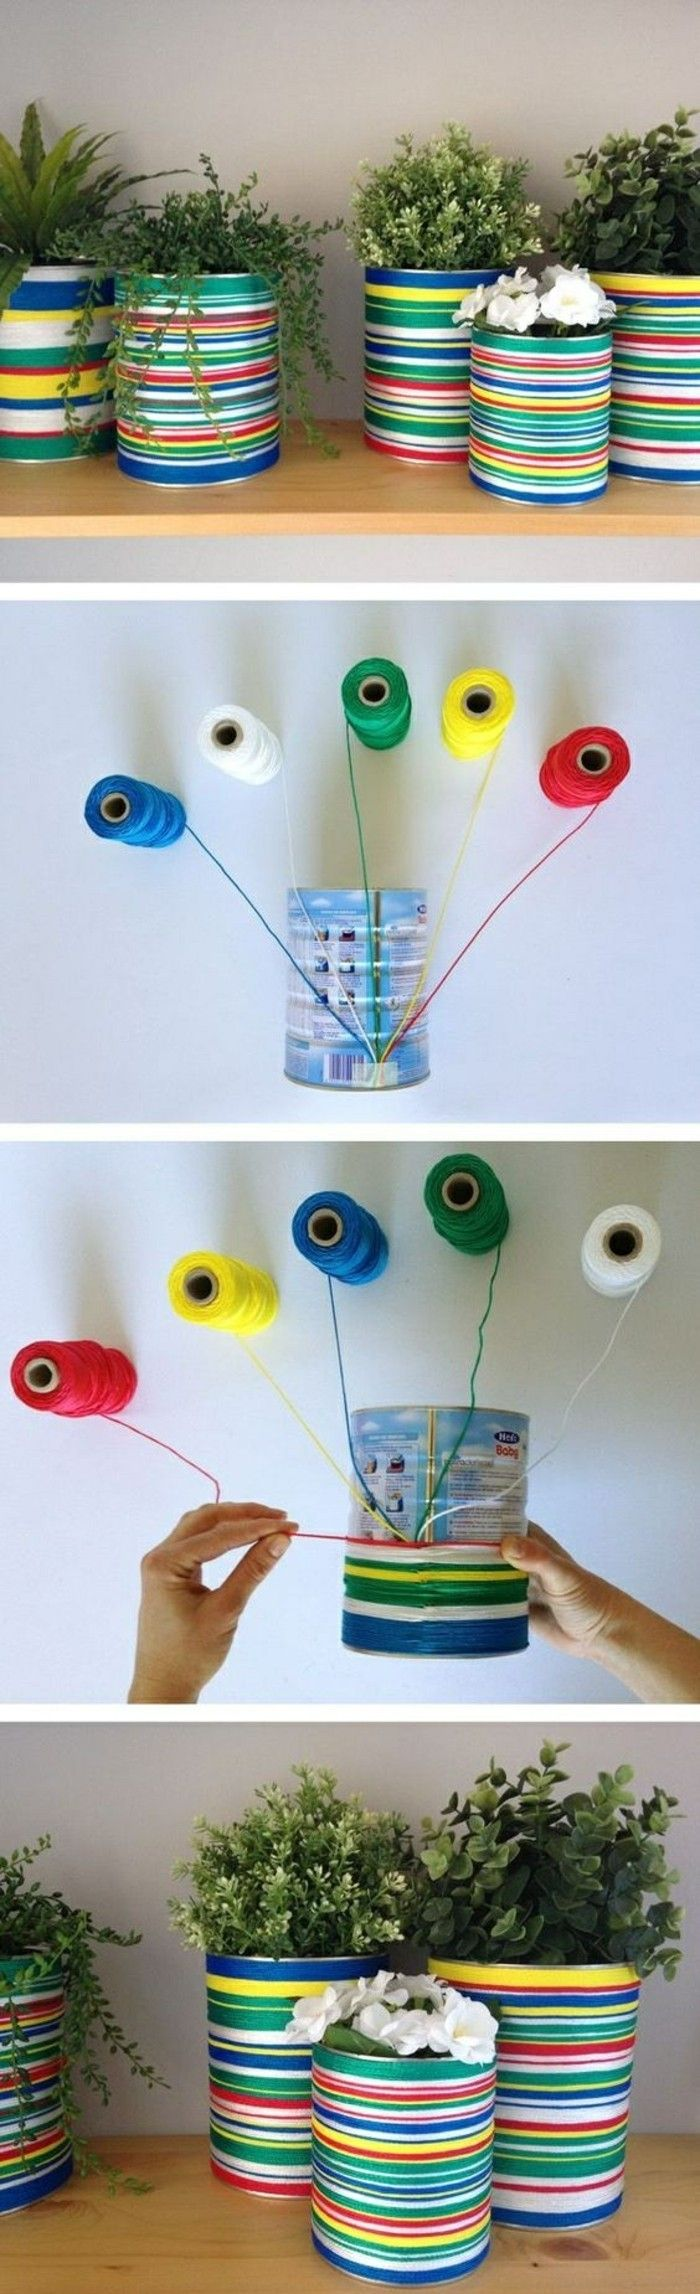 creative craft-ideas-Pots-off tin cans-thread-in-different-colors